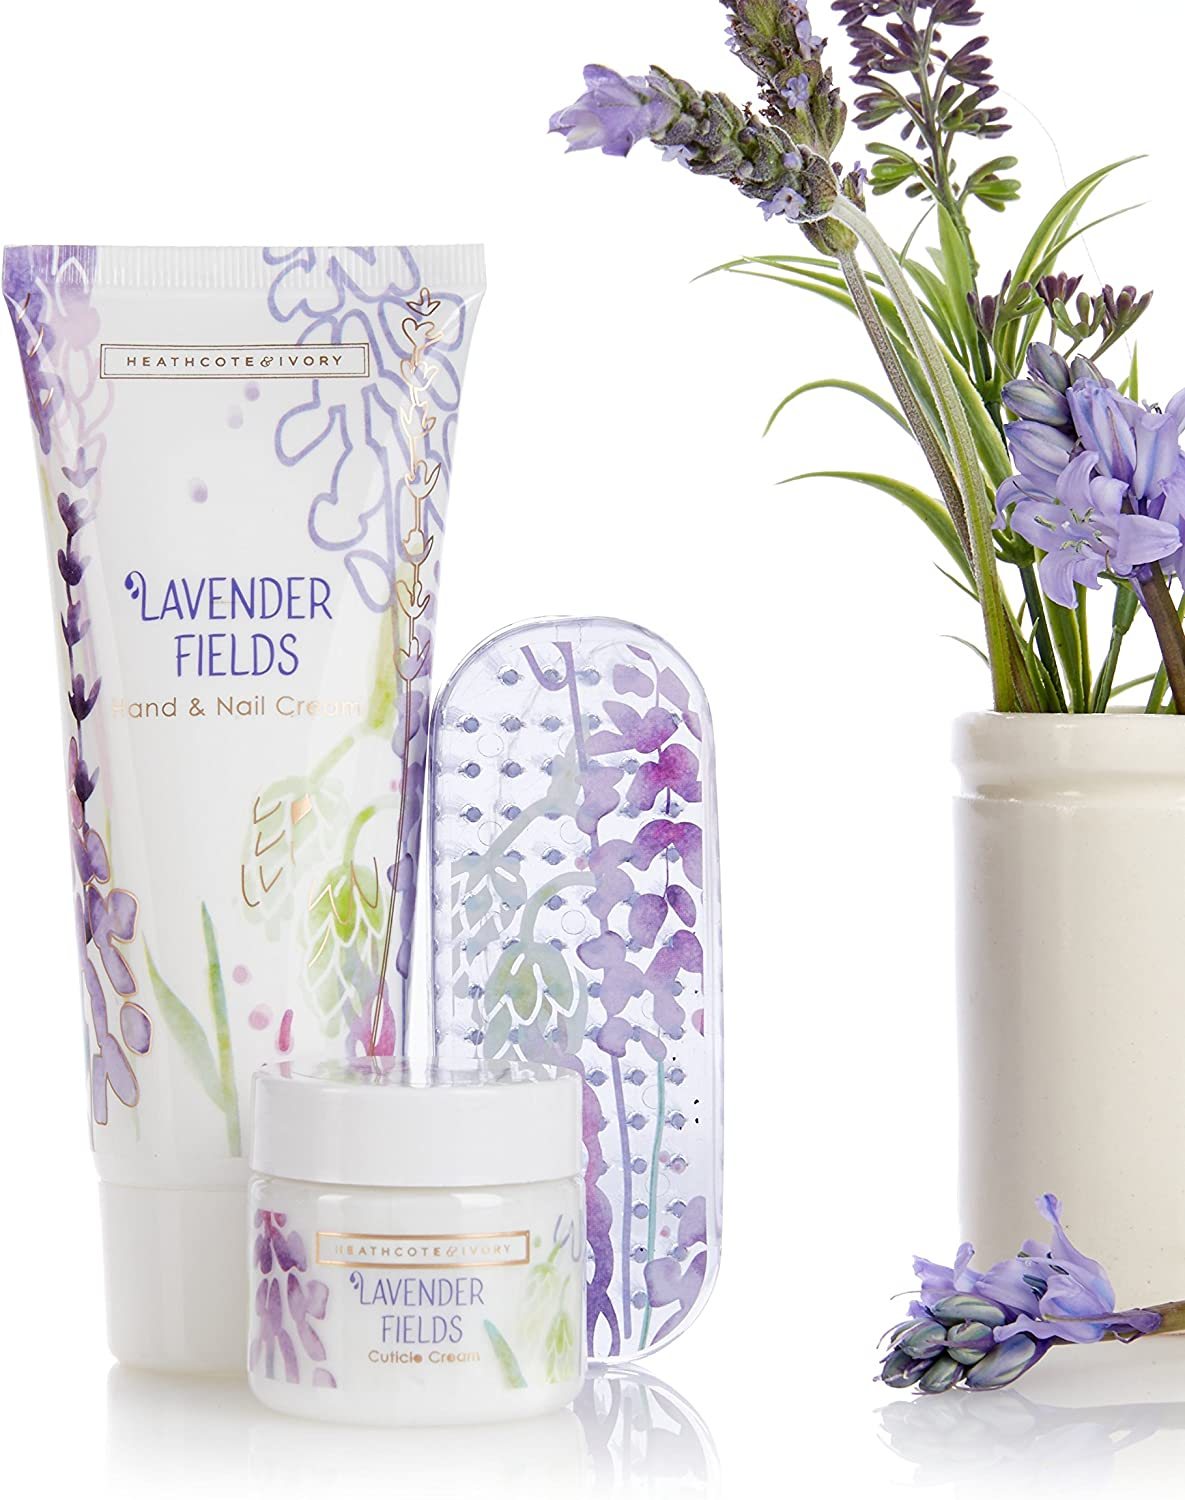 G. Field Lavender Hand Cream review | Through The Looking Glass